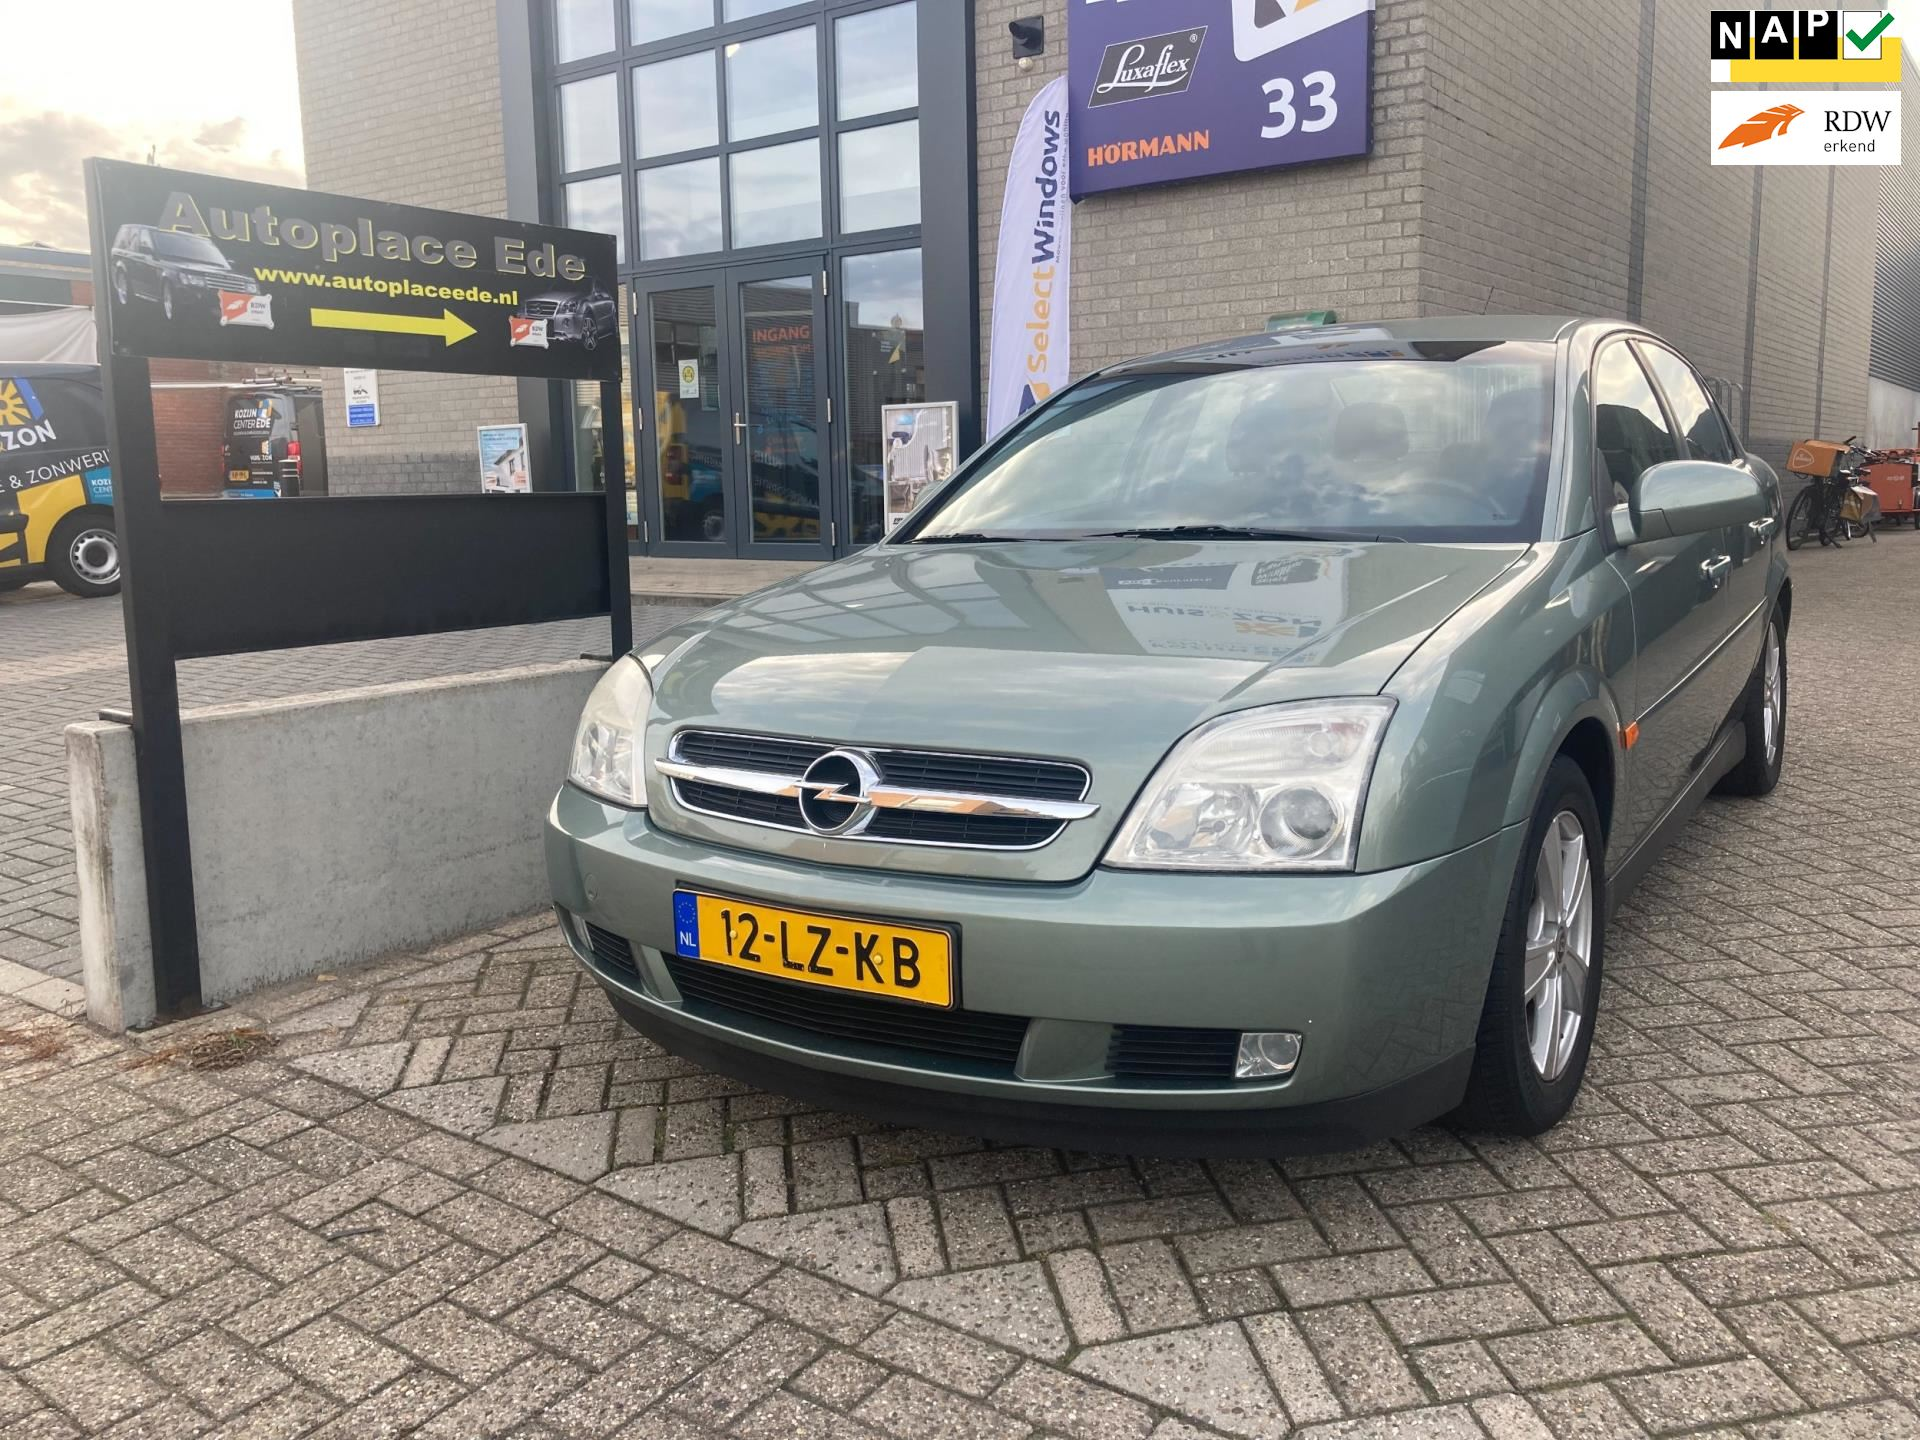 Opel Vectra occasion - autoplaceede